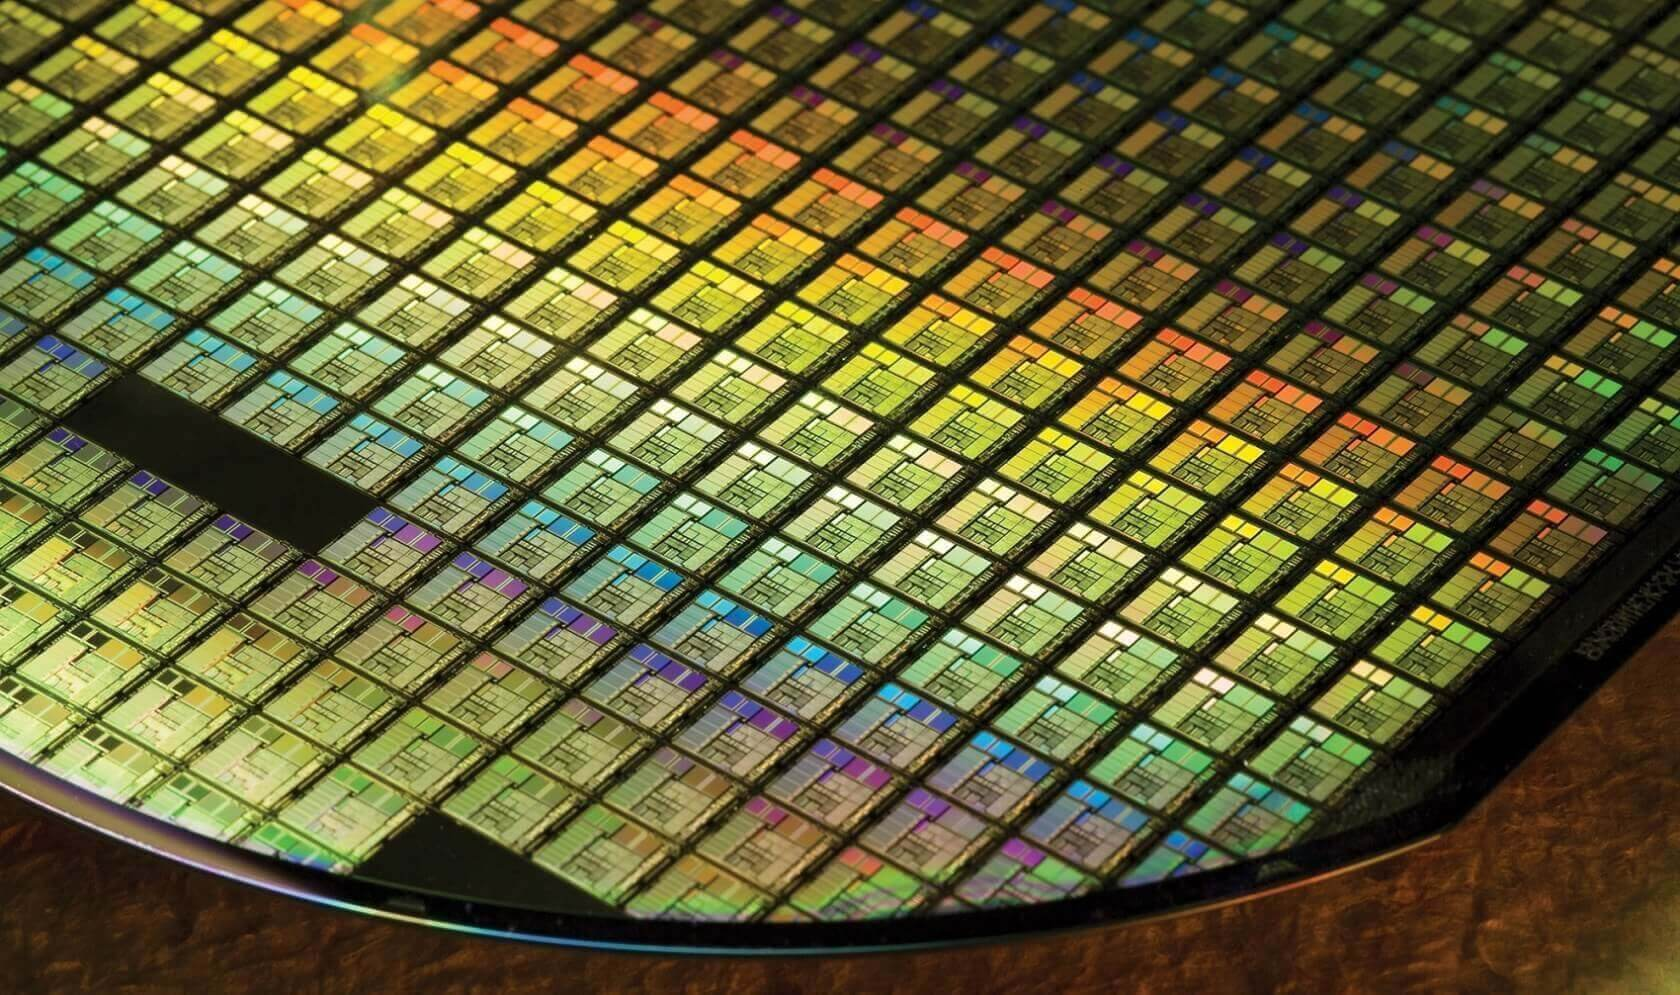 TSMC makes progress on 5nm with complete infrastructure design and